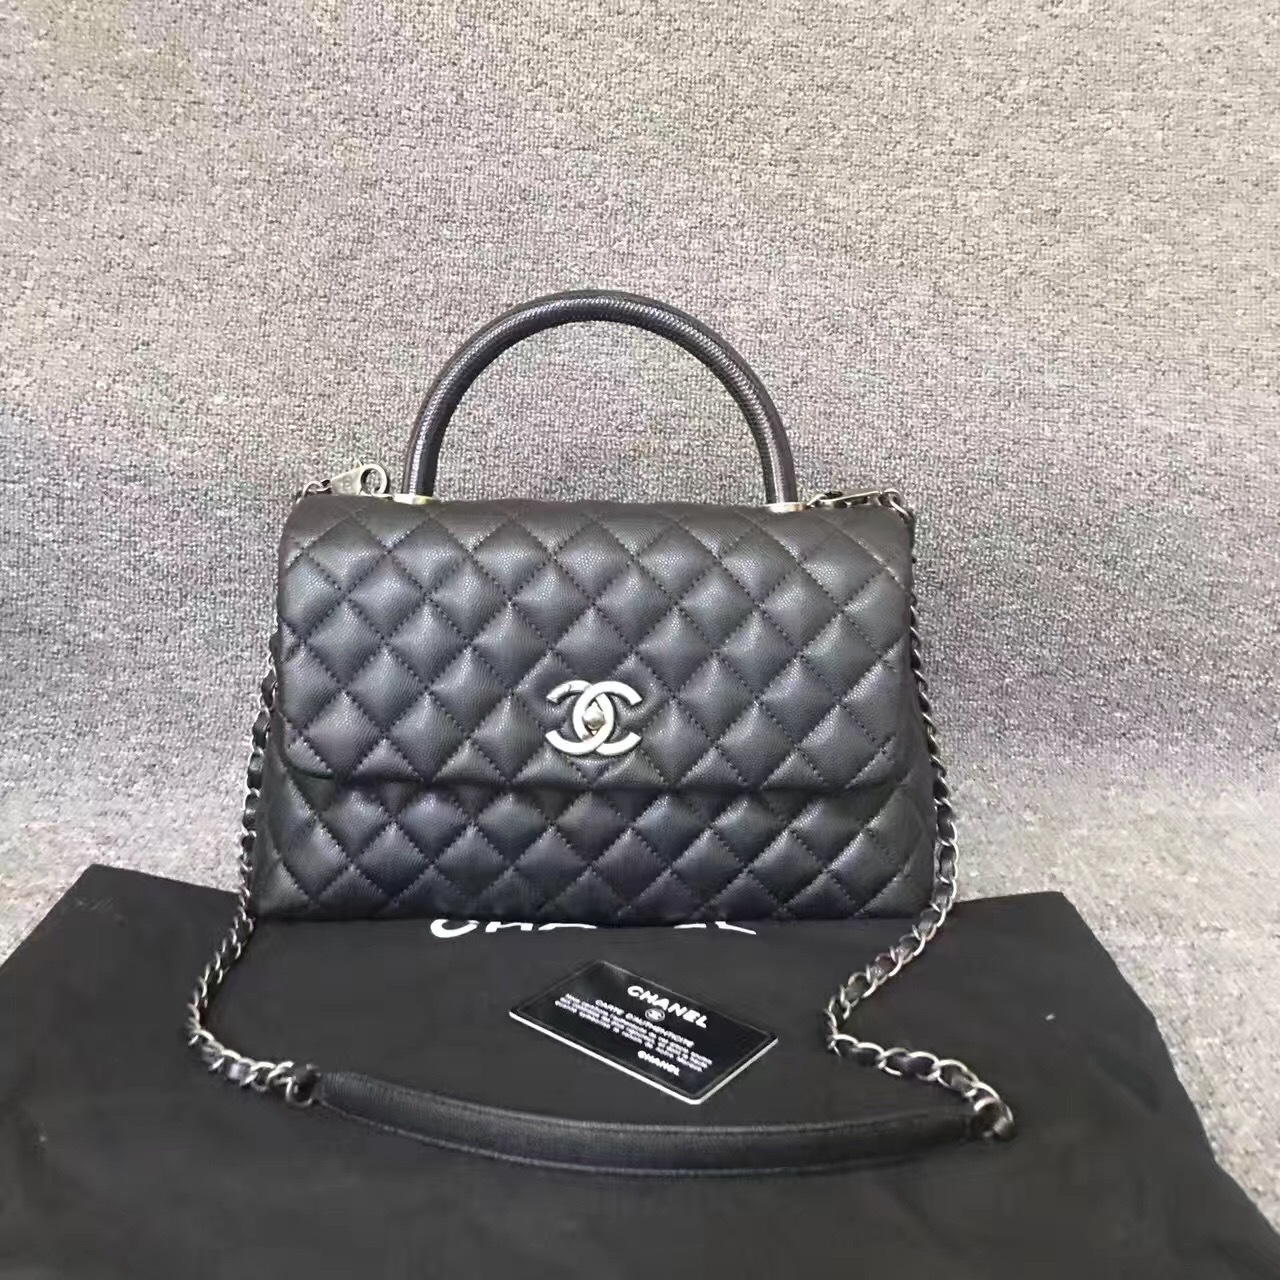 1b5b897e058eac 100% AUTH NEW CHANEL 2016/2017 MEDIUM PYTHON COCO HANDLE BAG BLACK ...